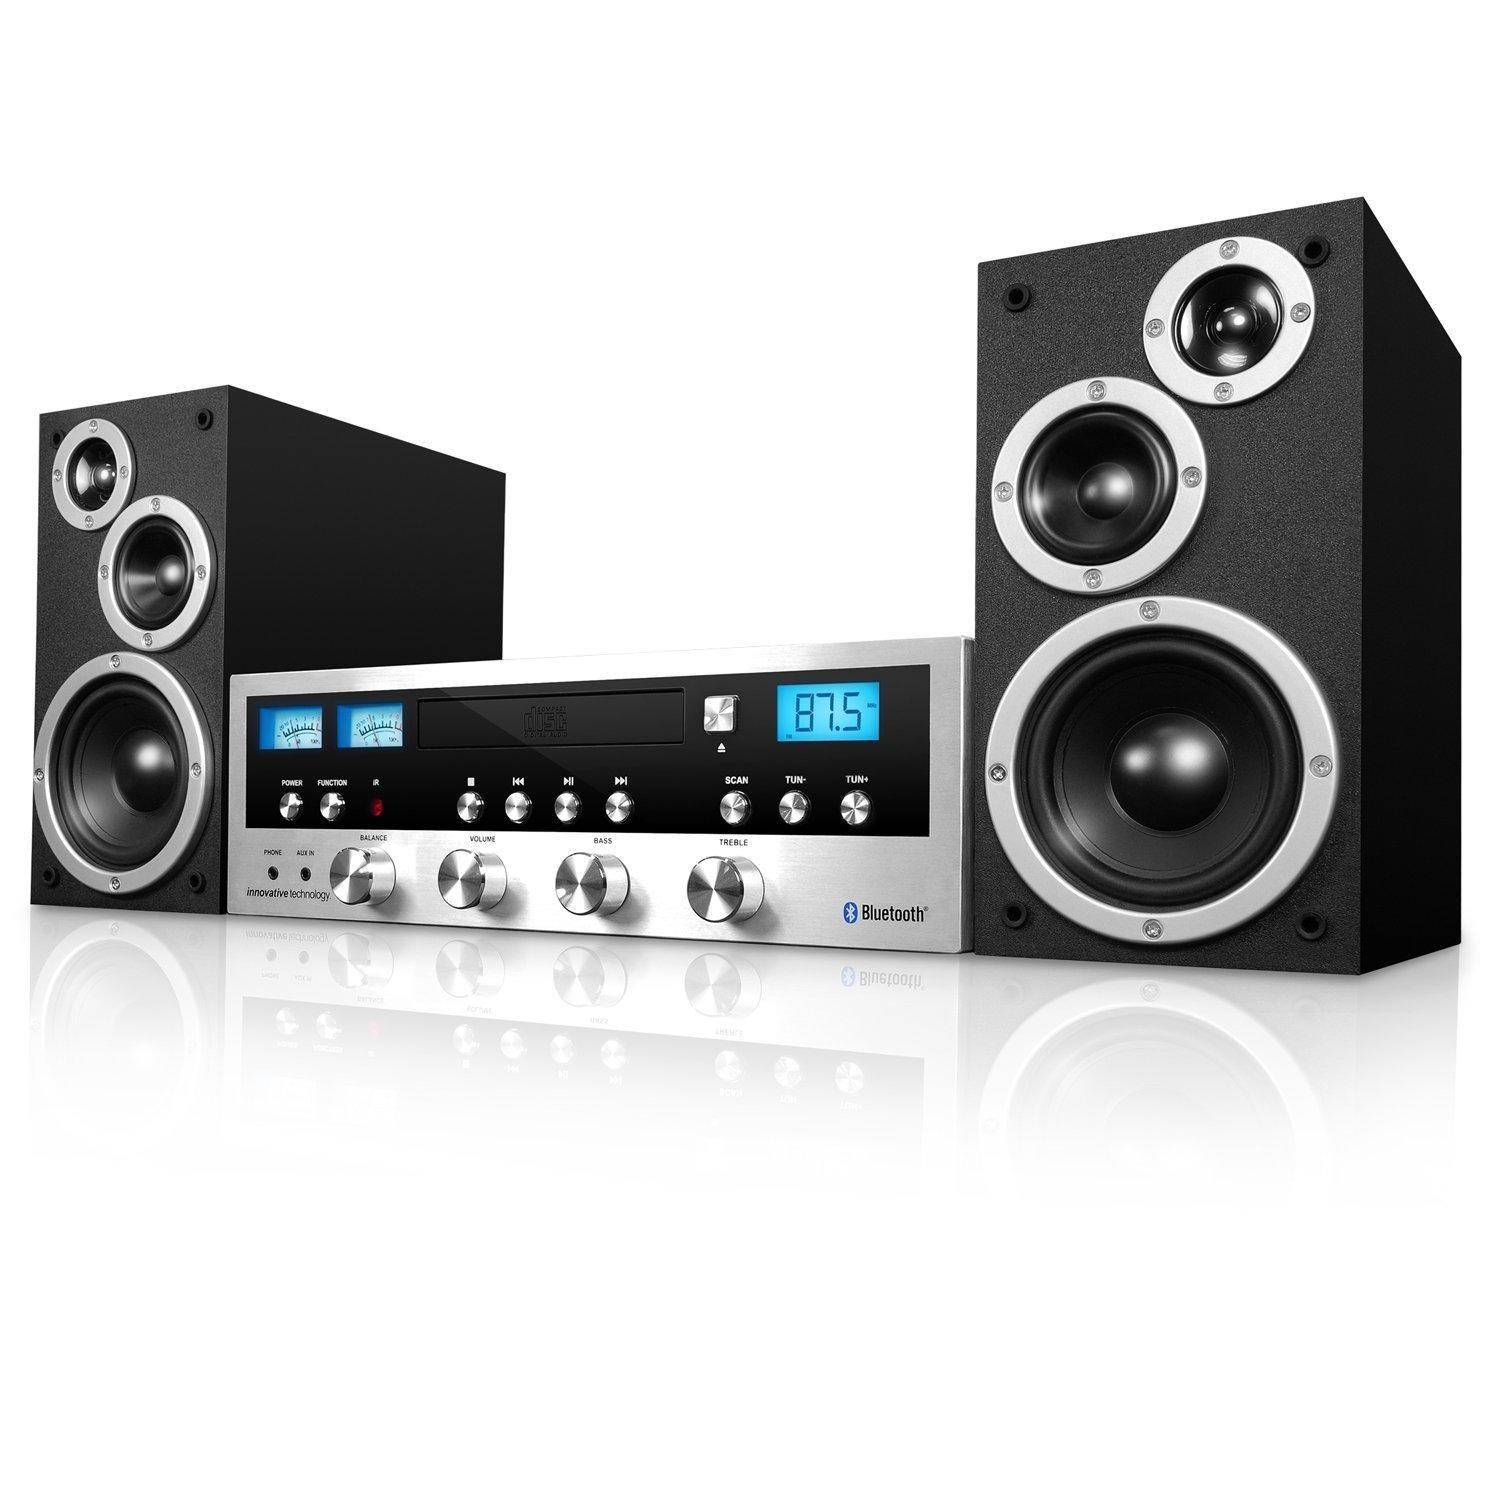 Refurbished 50-Watt Classic CD Stereo System with Bluetooth